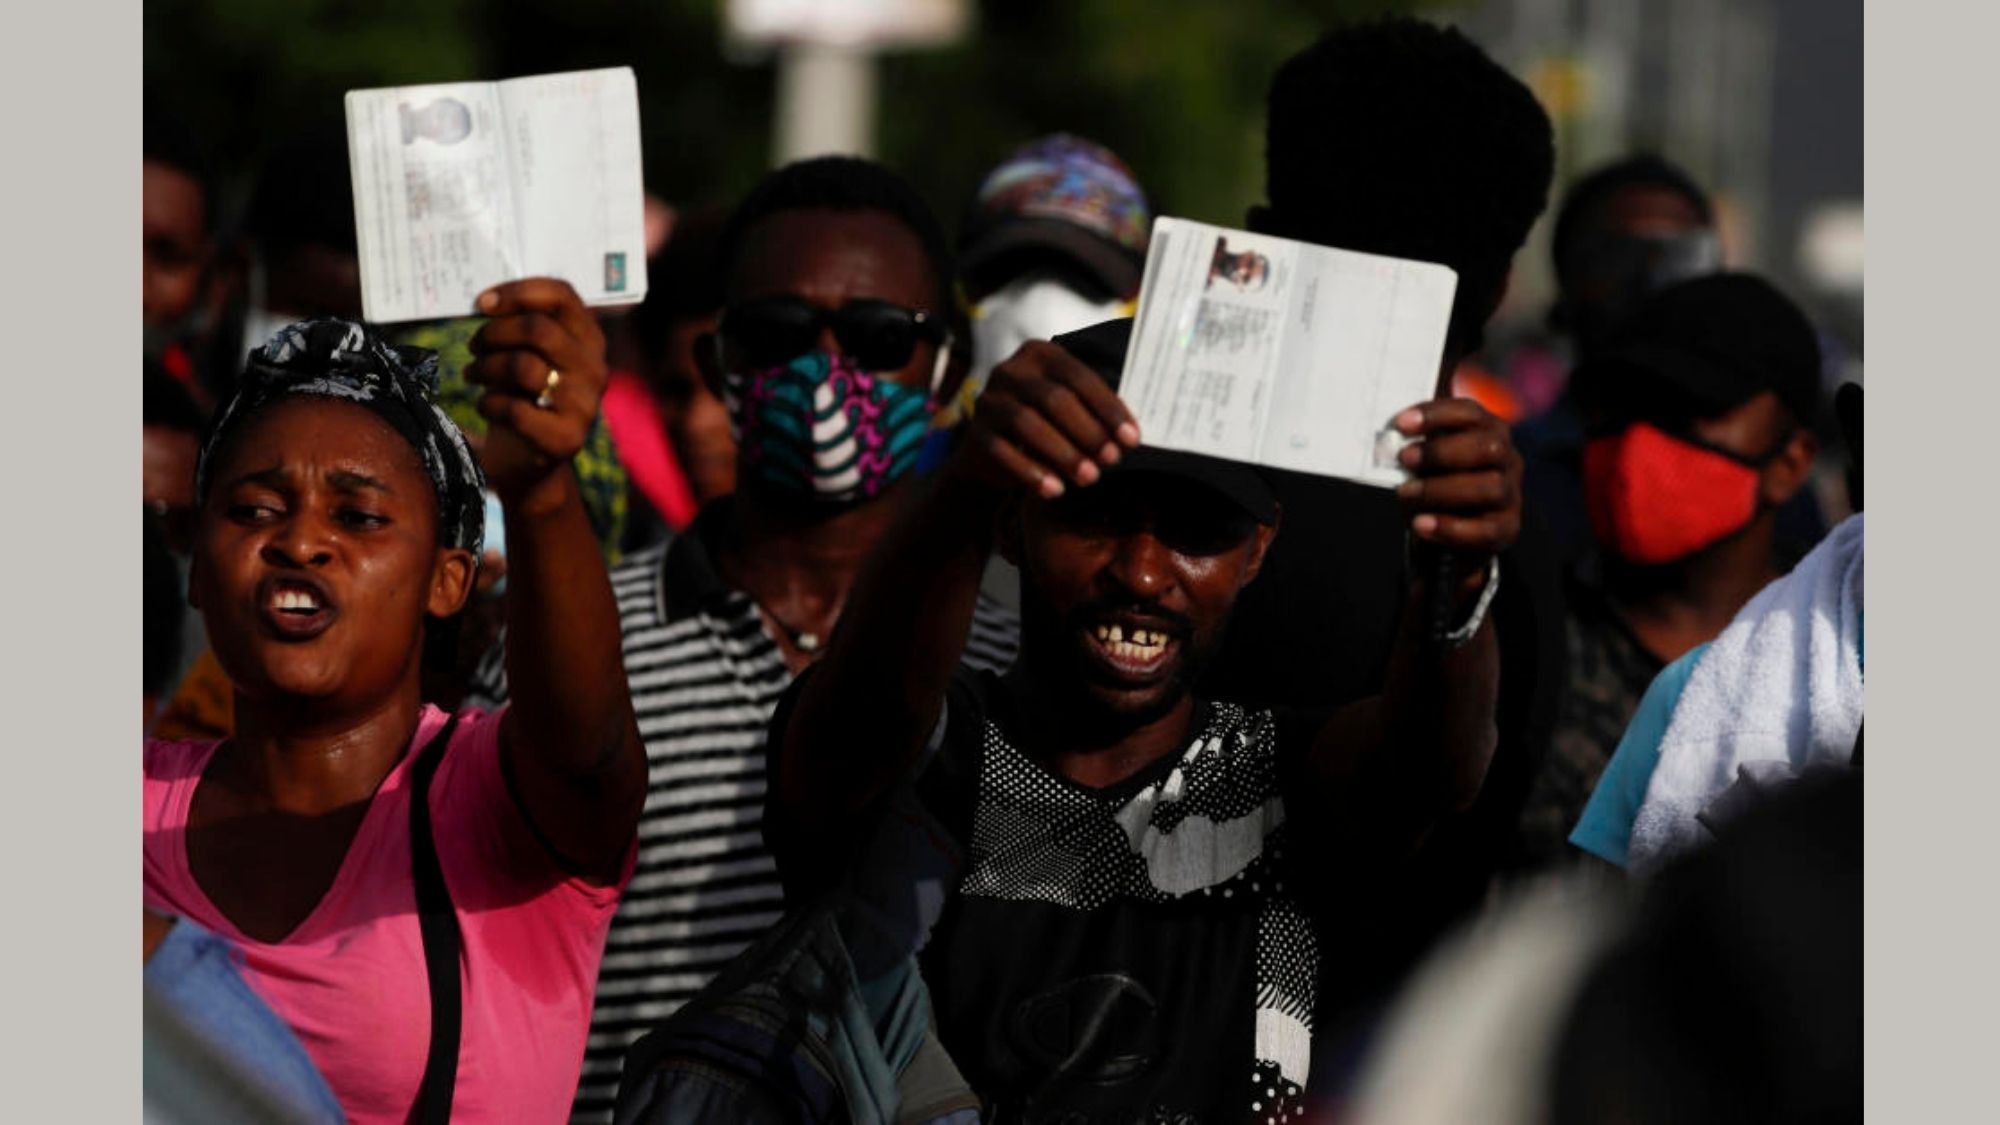 Haiti on the brink of 'anarchy' after President's assassination; asks help from US, UN photo from Yahoo Sport UK